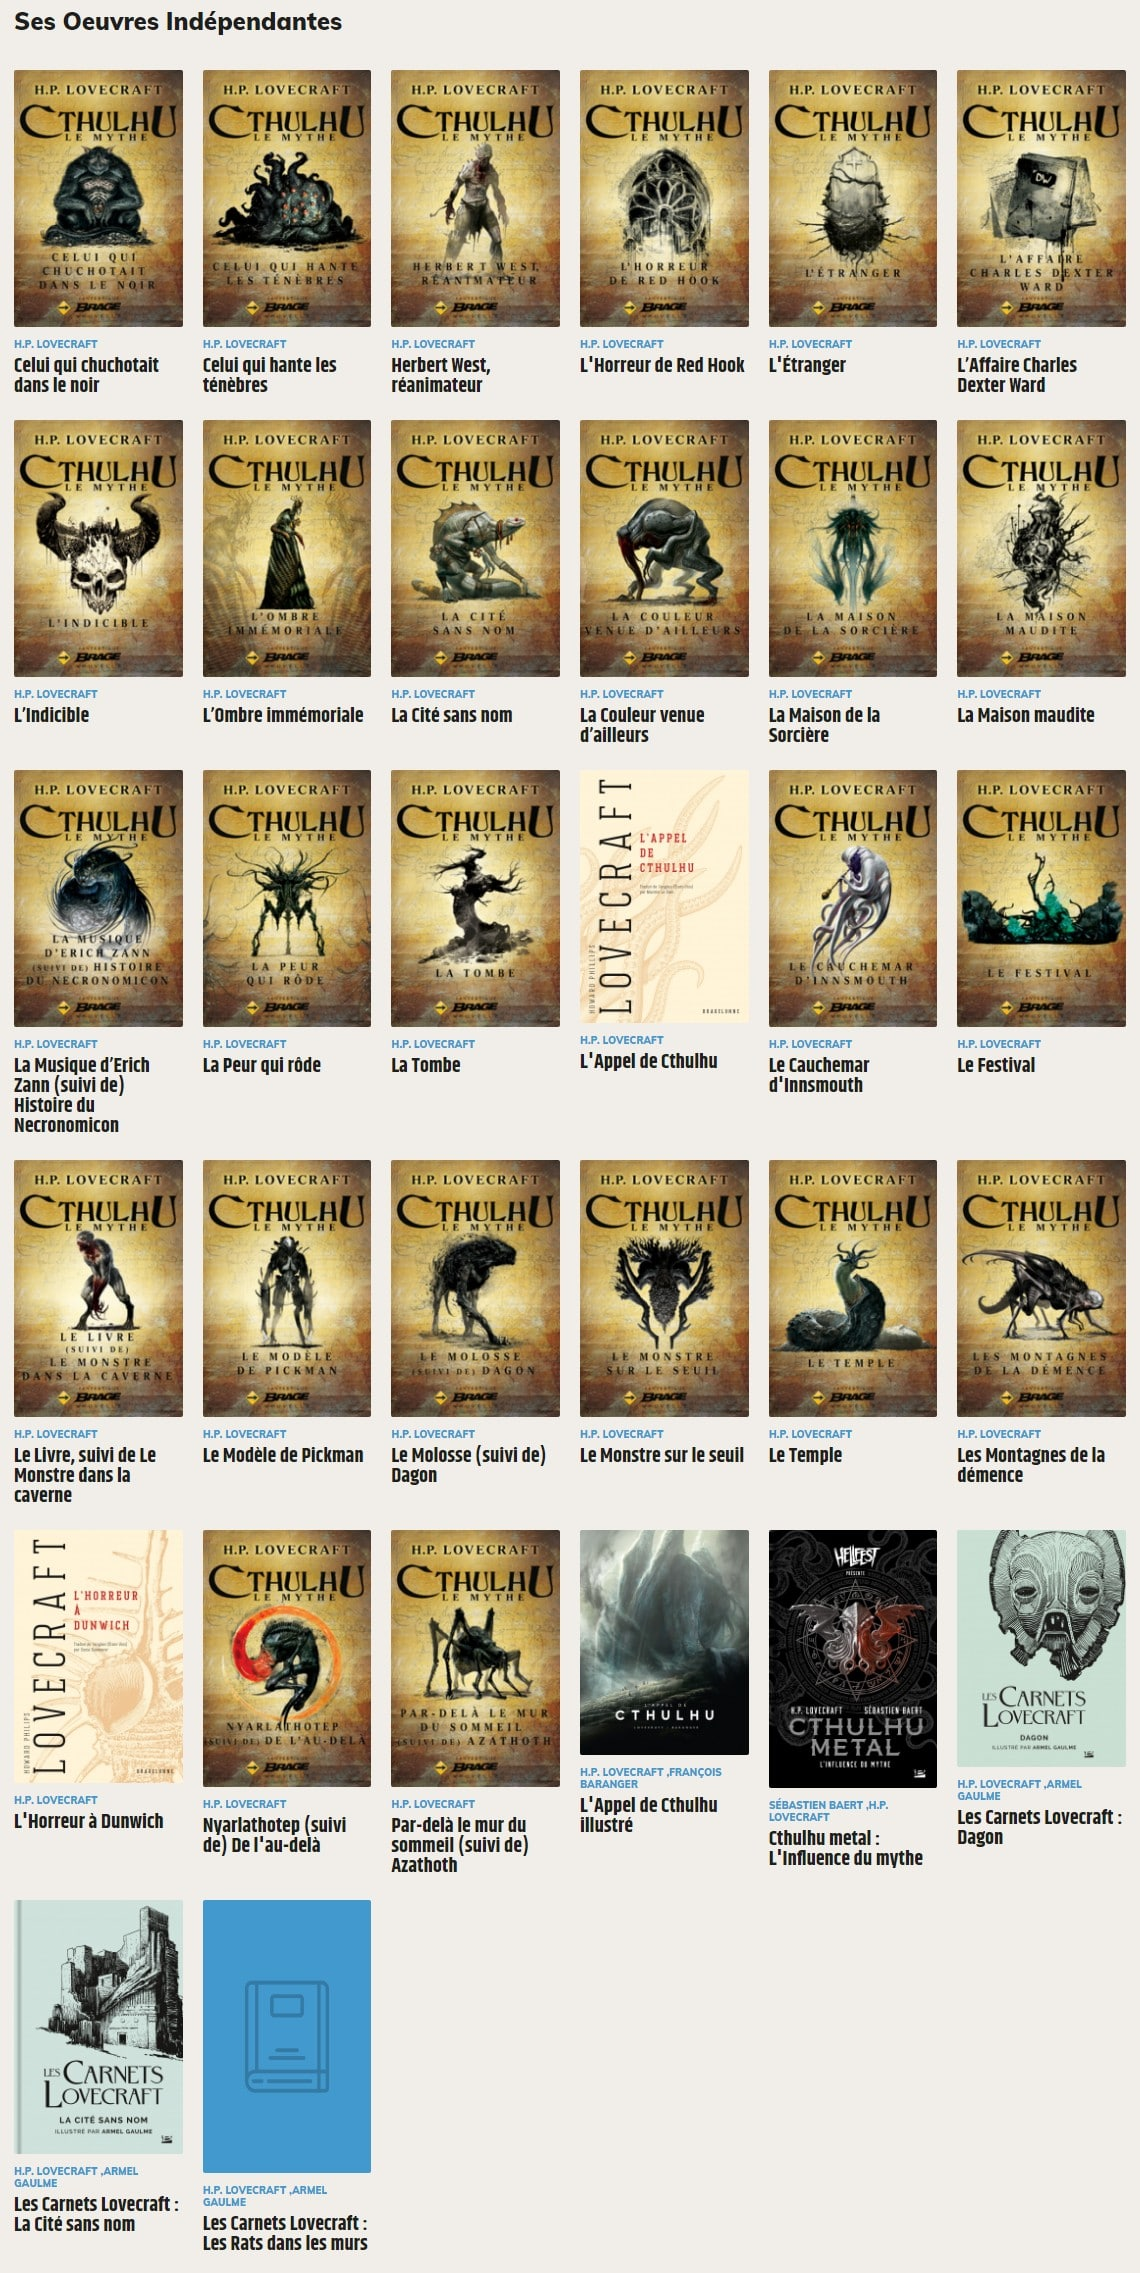 Lovecraft Bragelonne Livres De Lovecraft 2